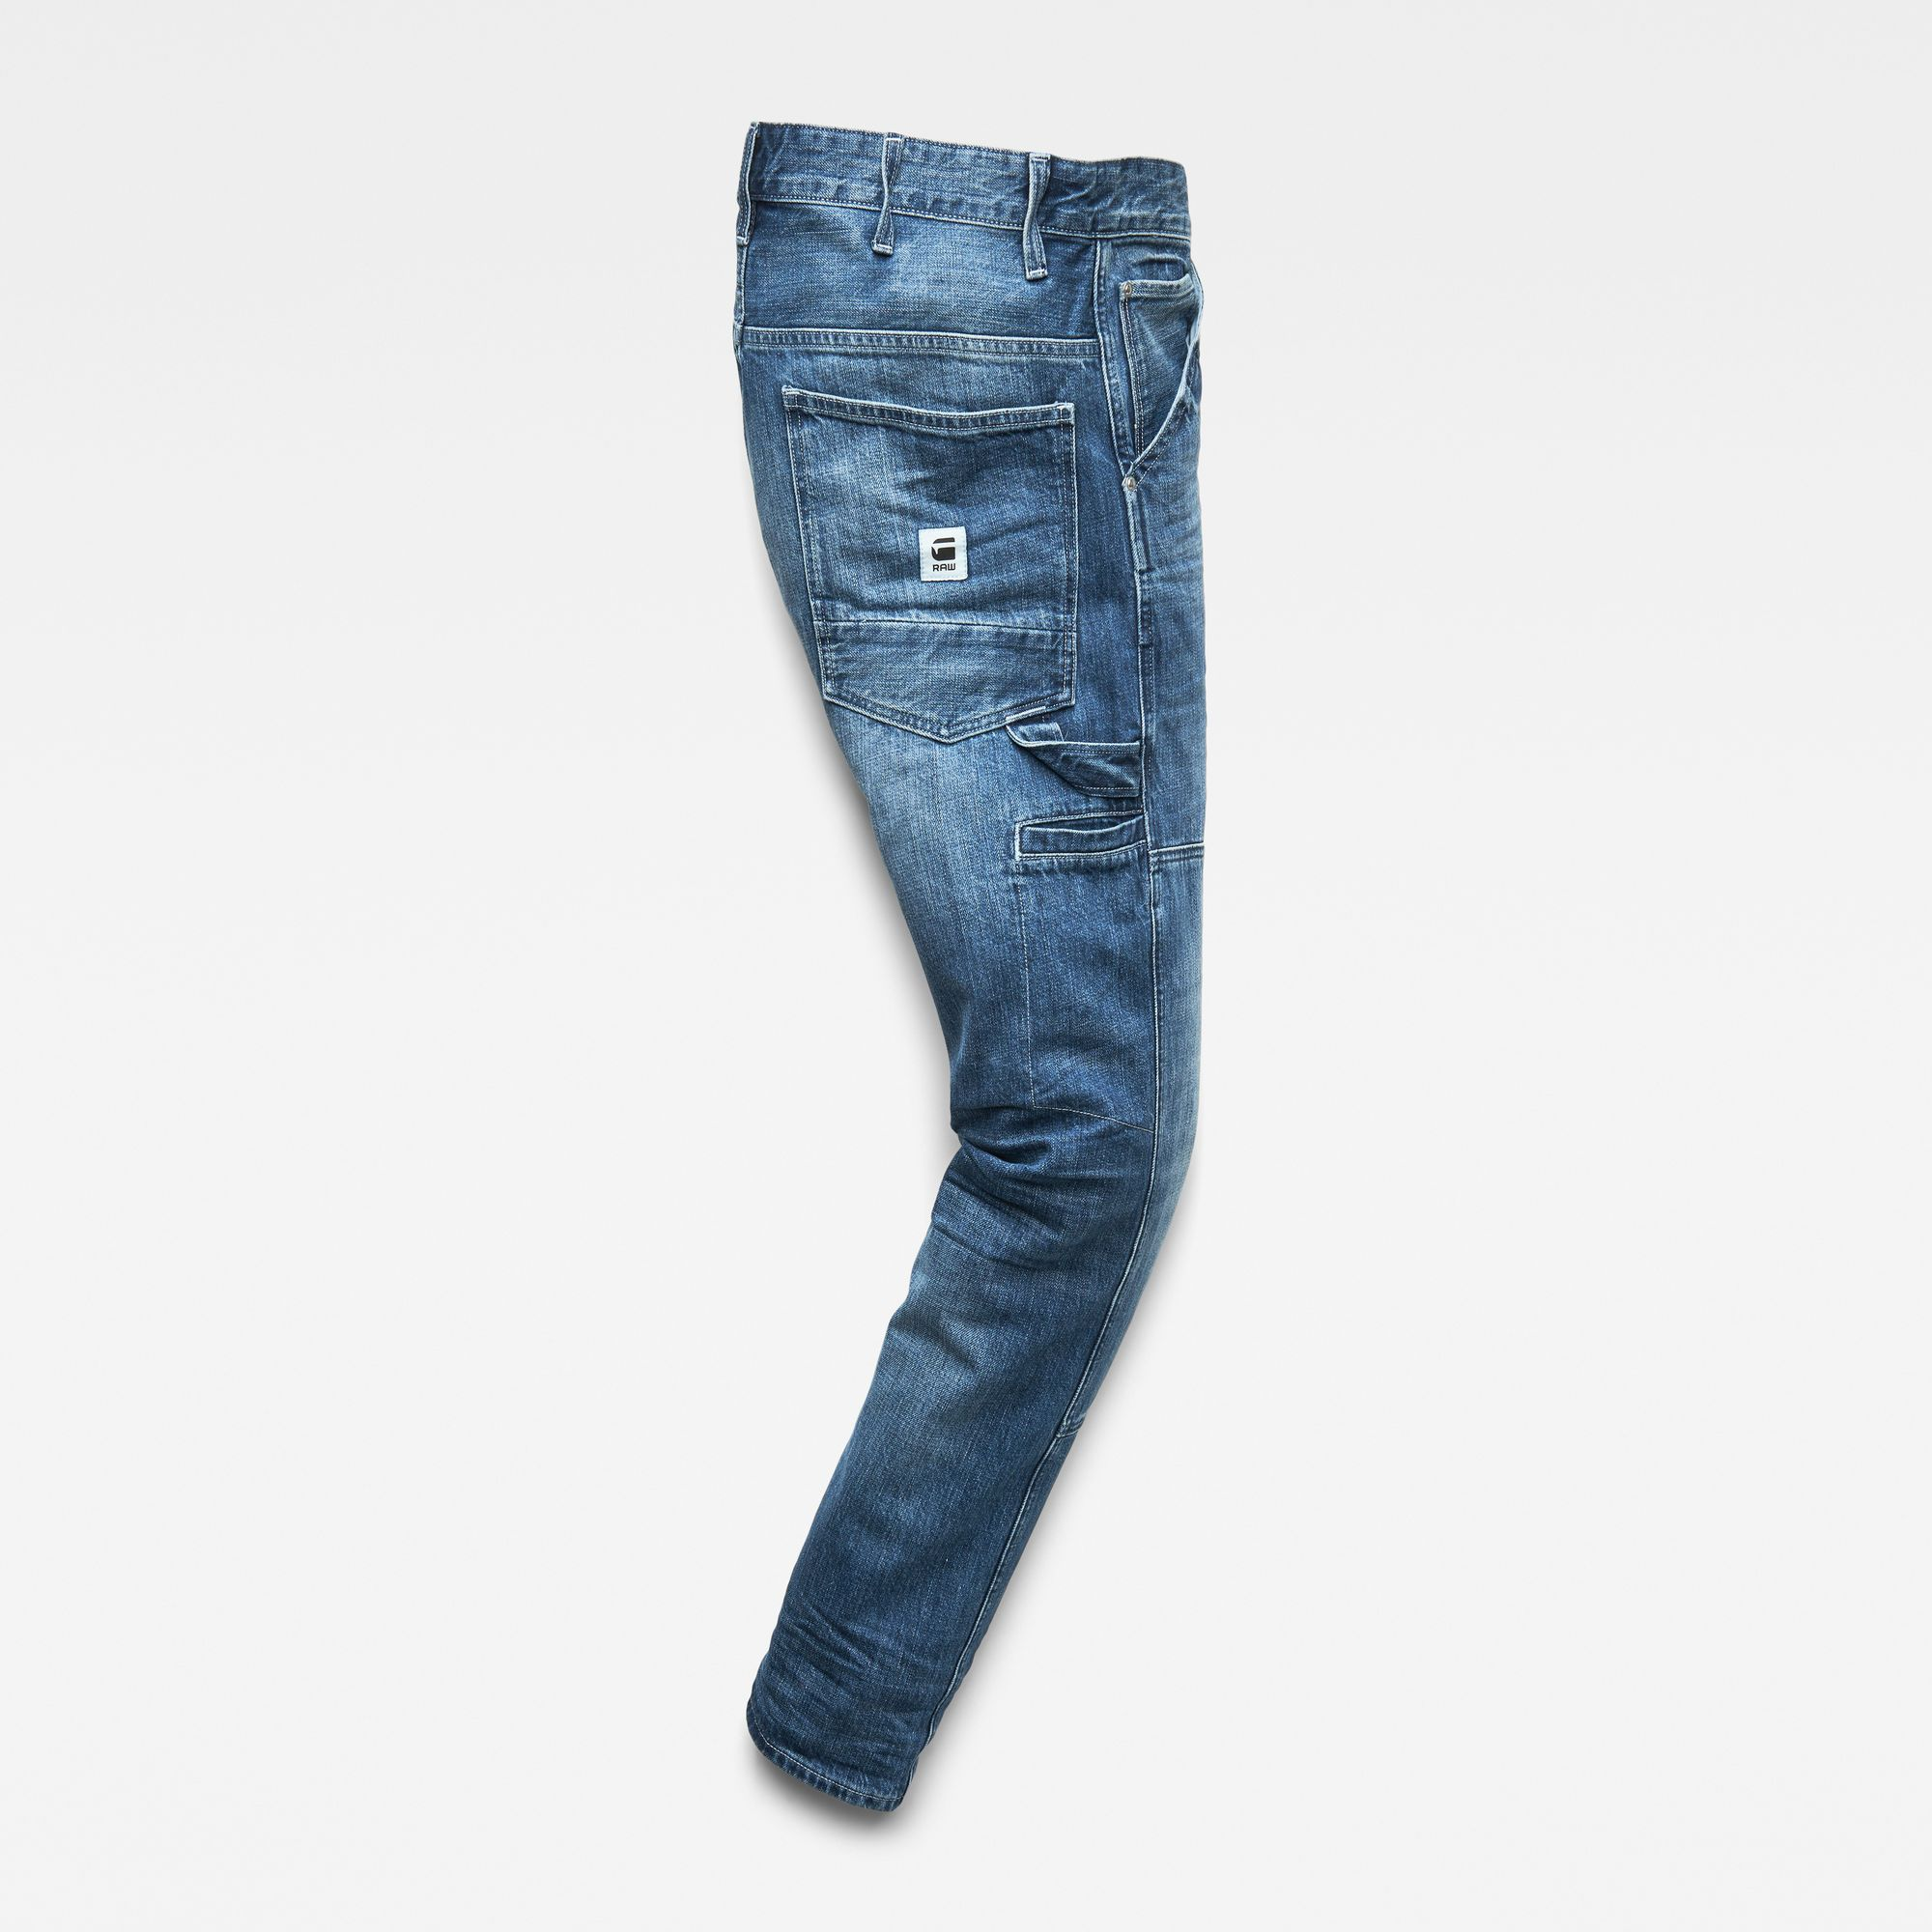 G-Star RAW Faeroes Straight Tapered Jeans